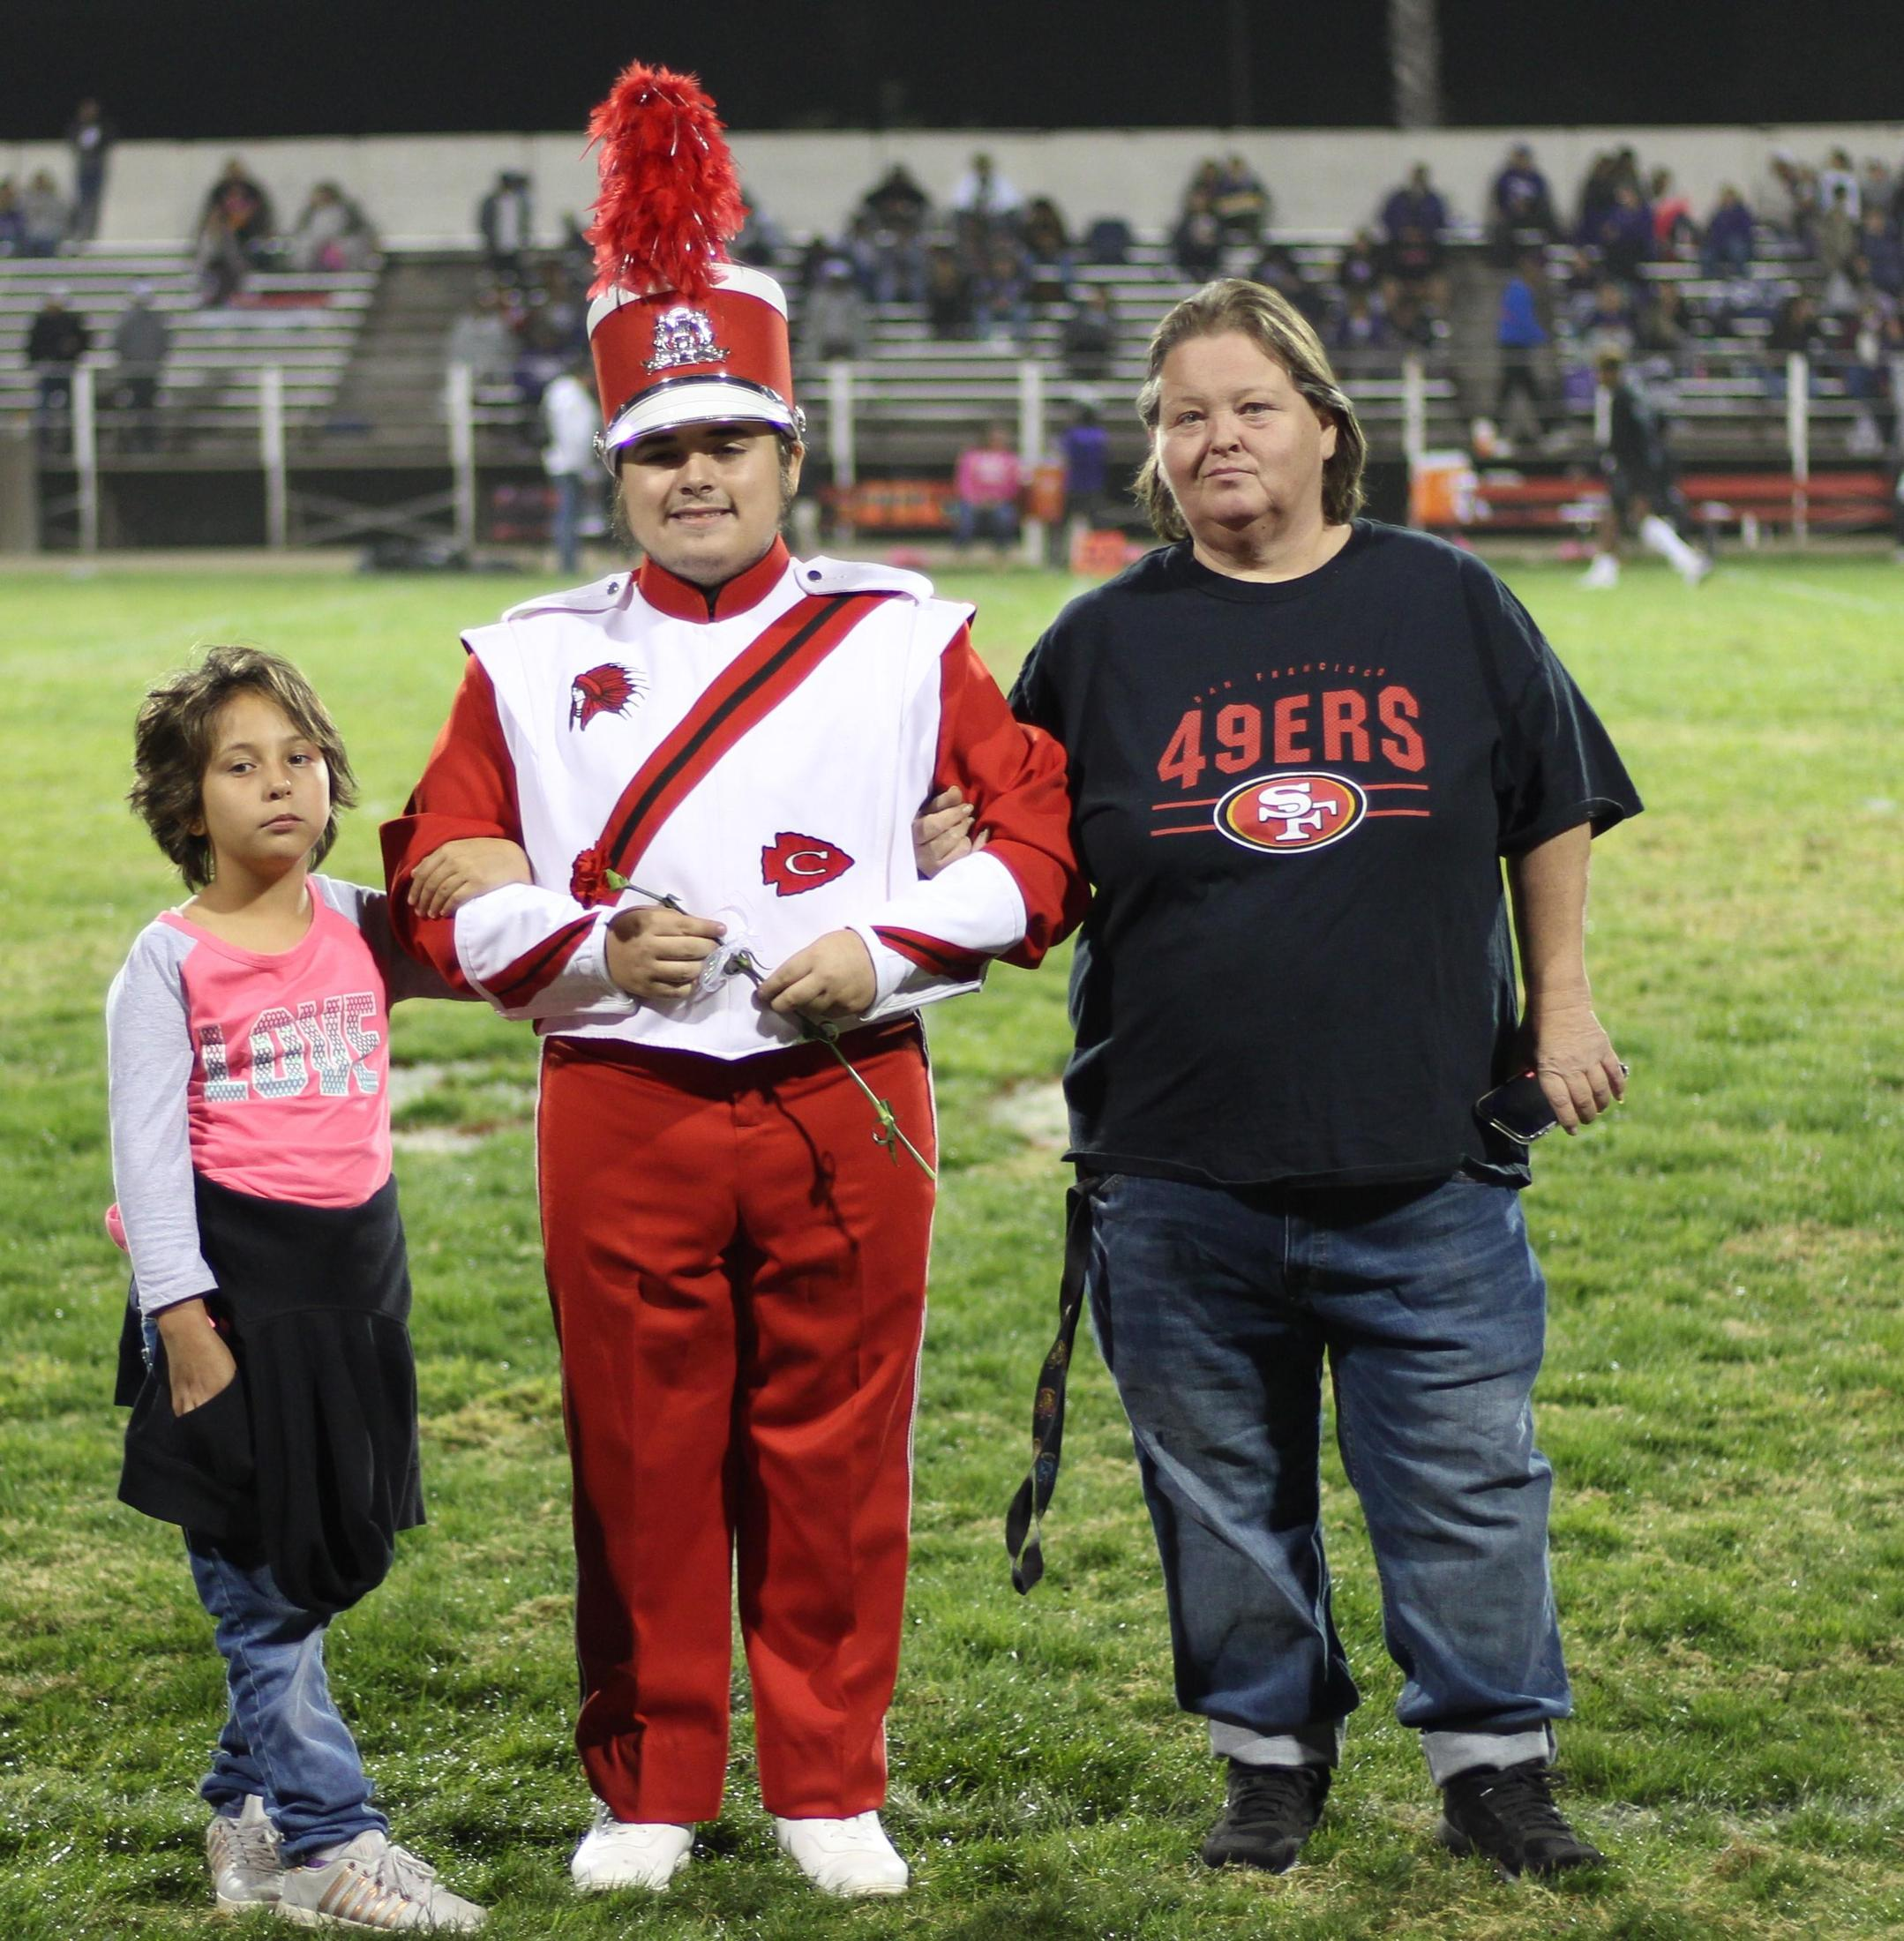 Senior band member Isaiah Bishop and his escorts.